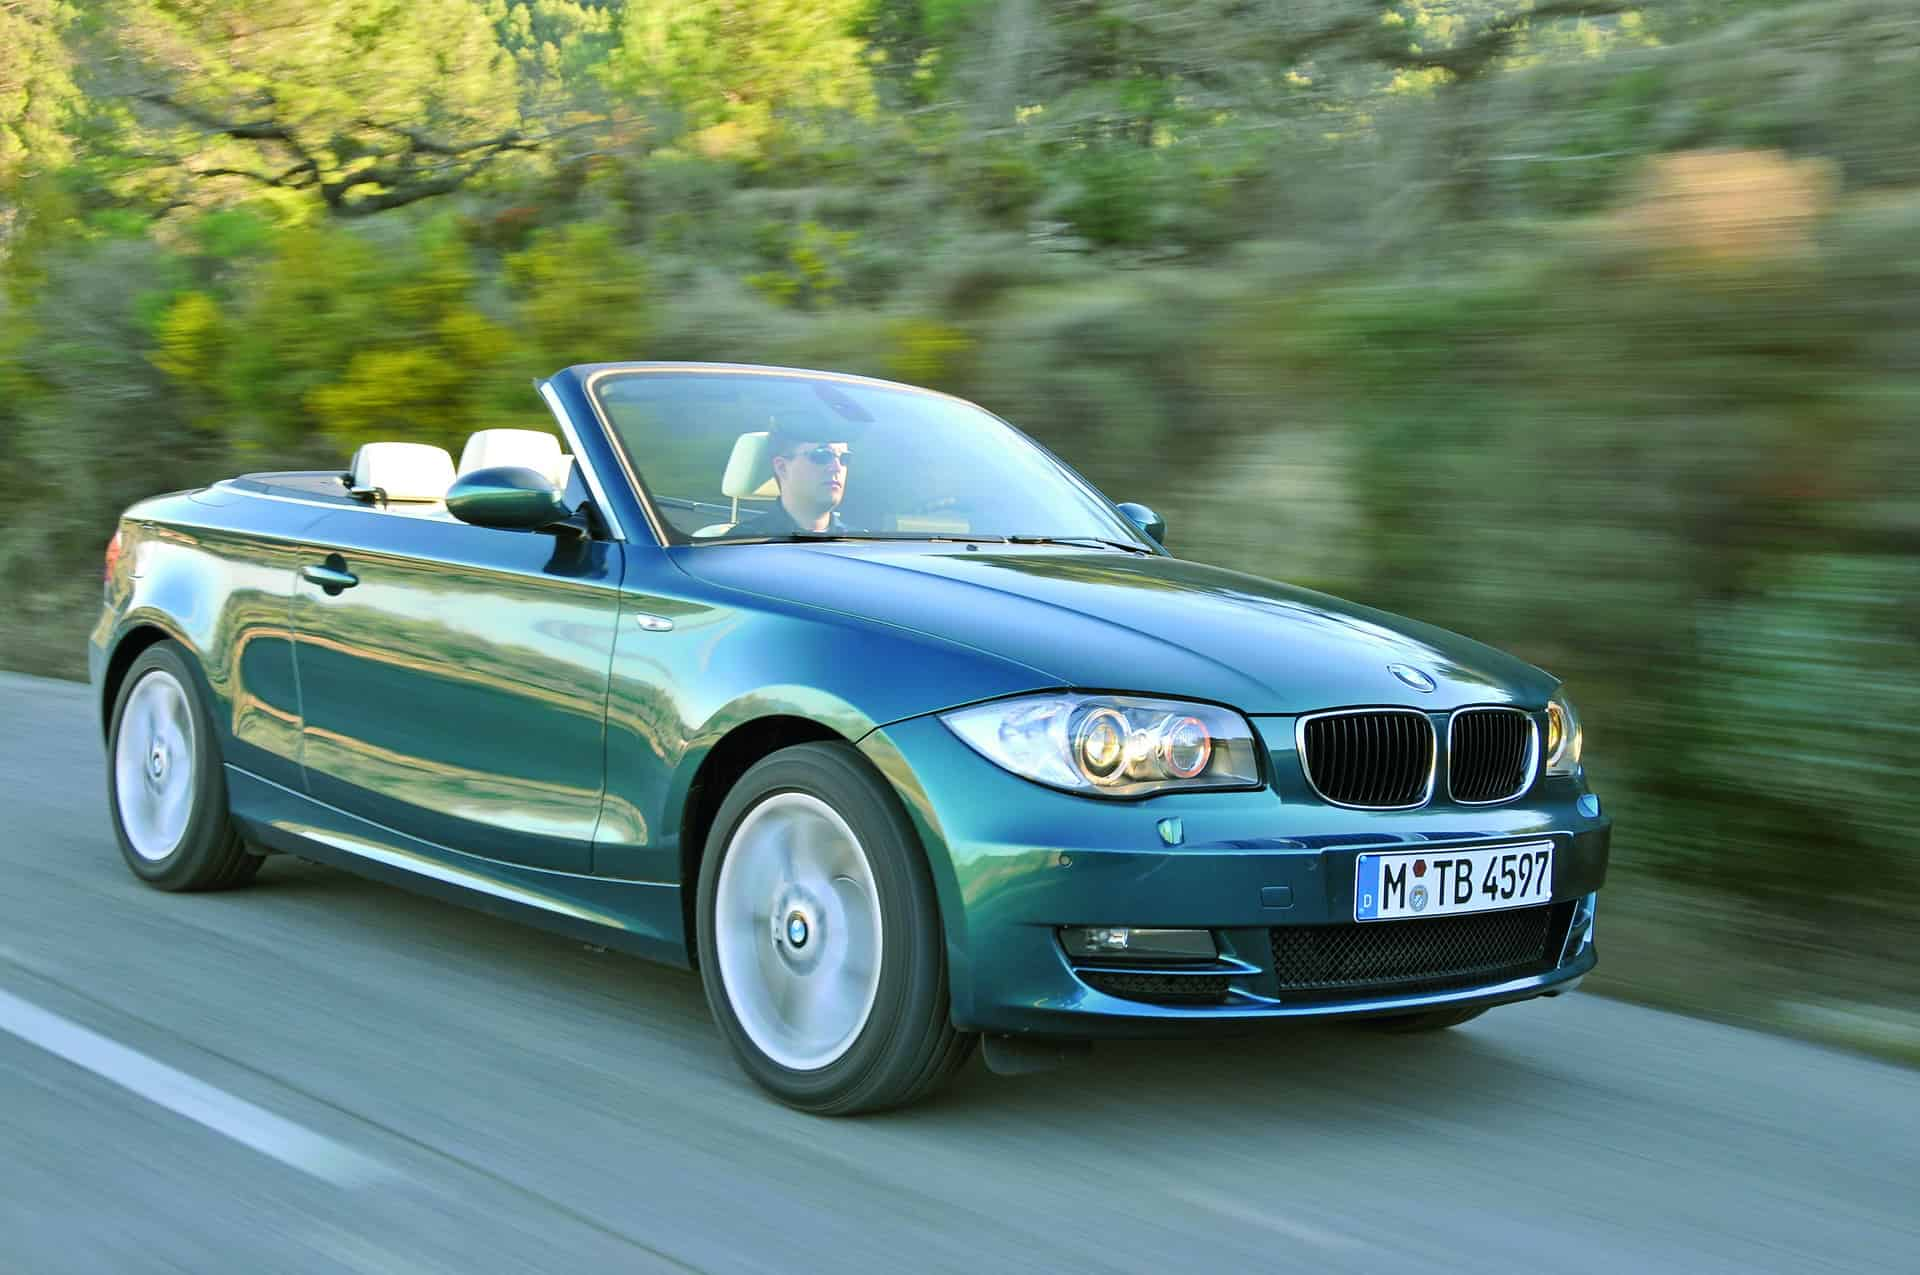 BMW 1 Series Convertible E88 4